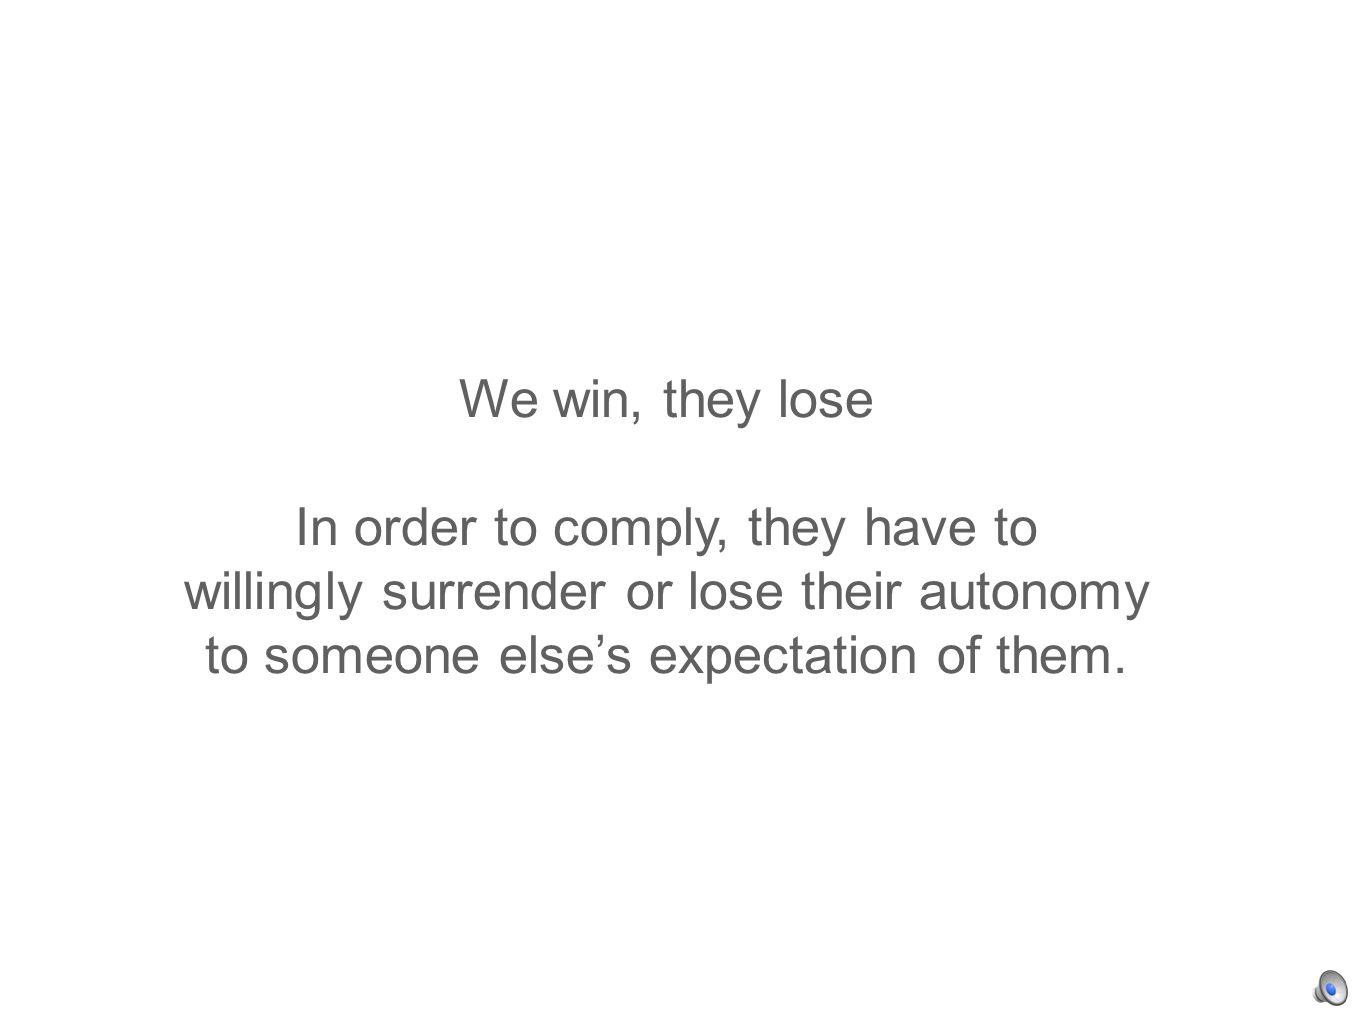 We win, they lose In order to comply, they have to willingly surrender or lose their autonomy to someone elses expectation of them.